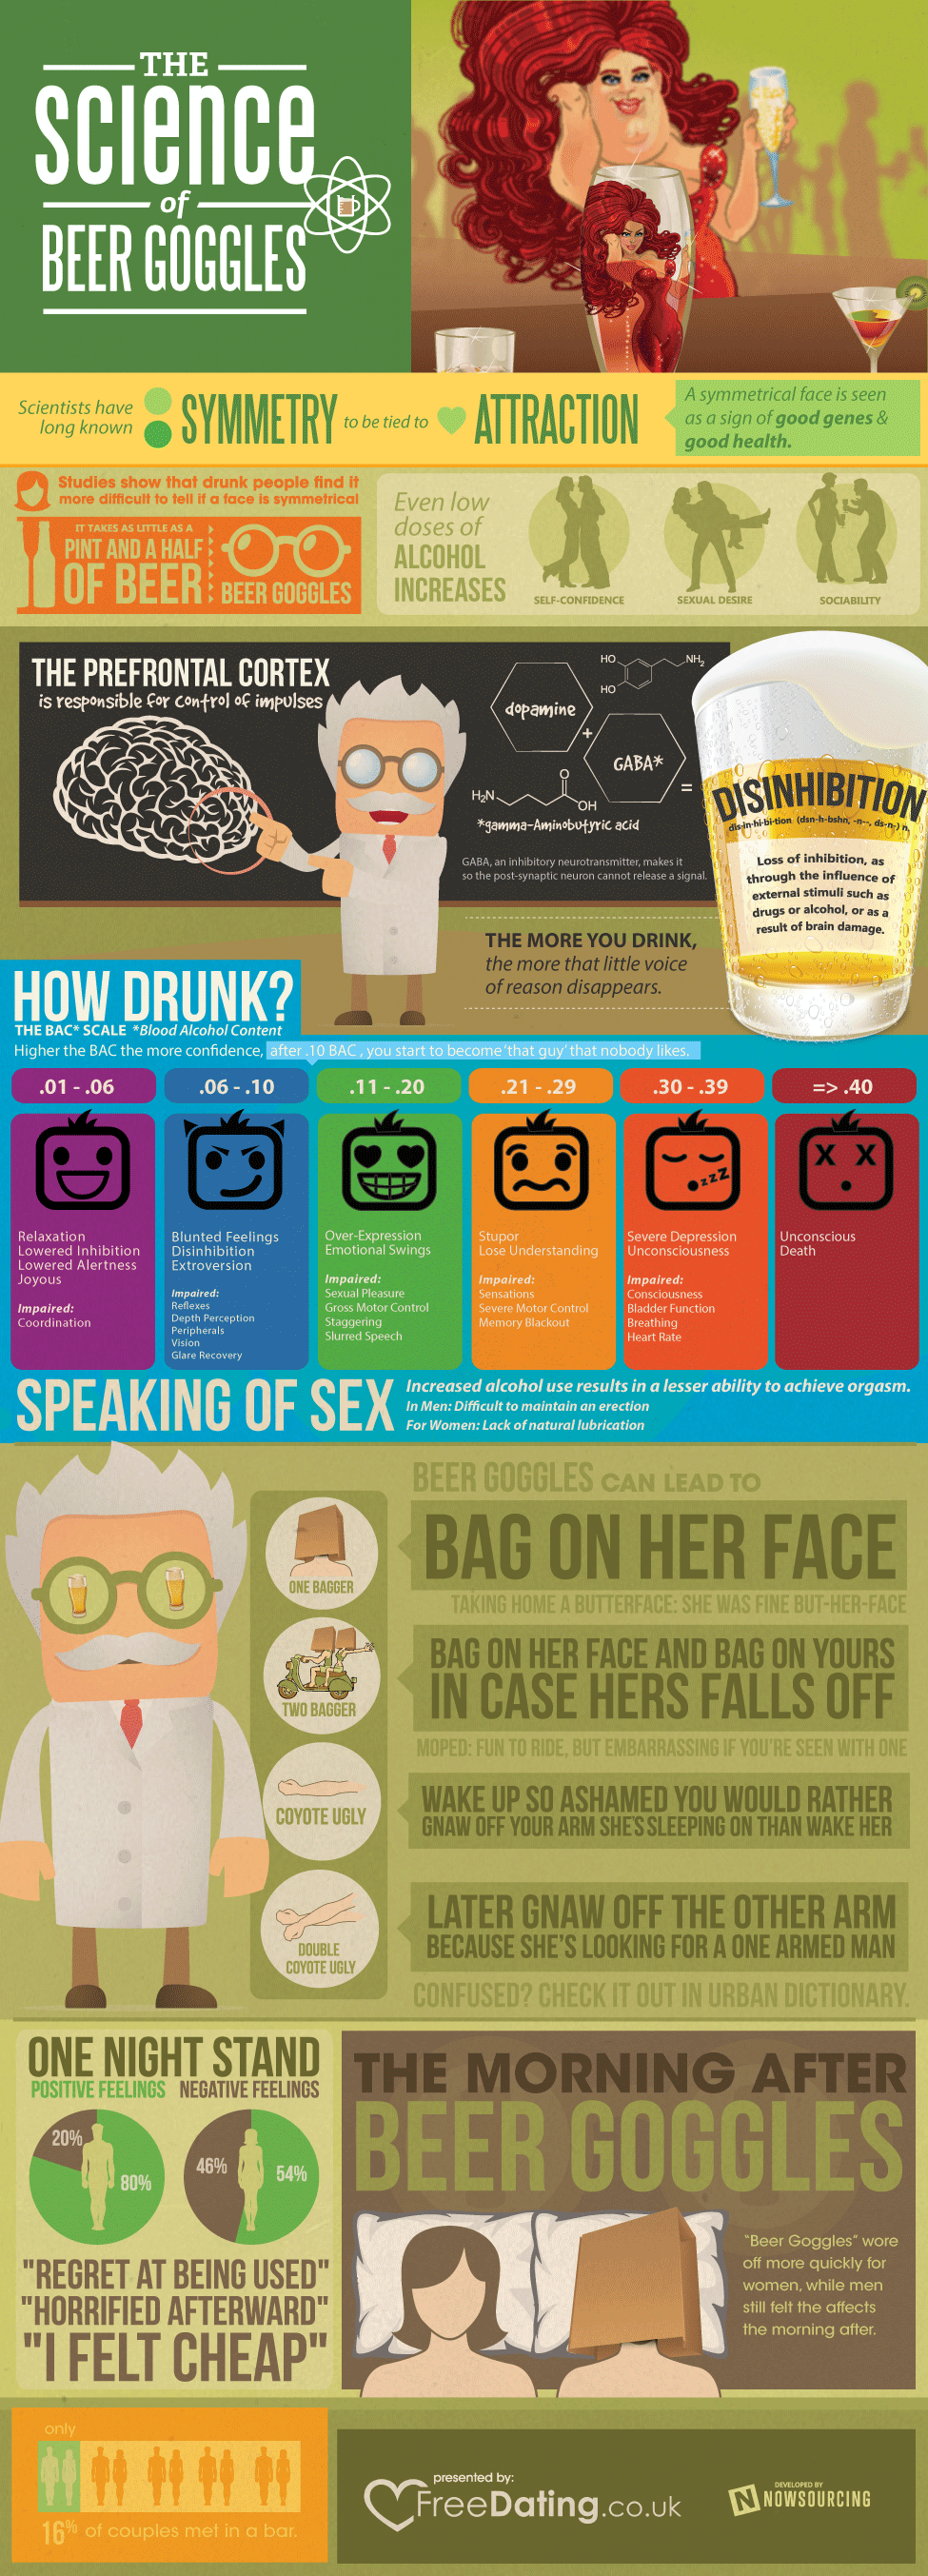 The Science of Beer Goggles